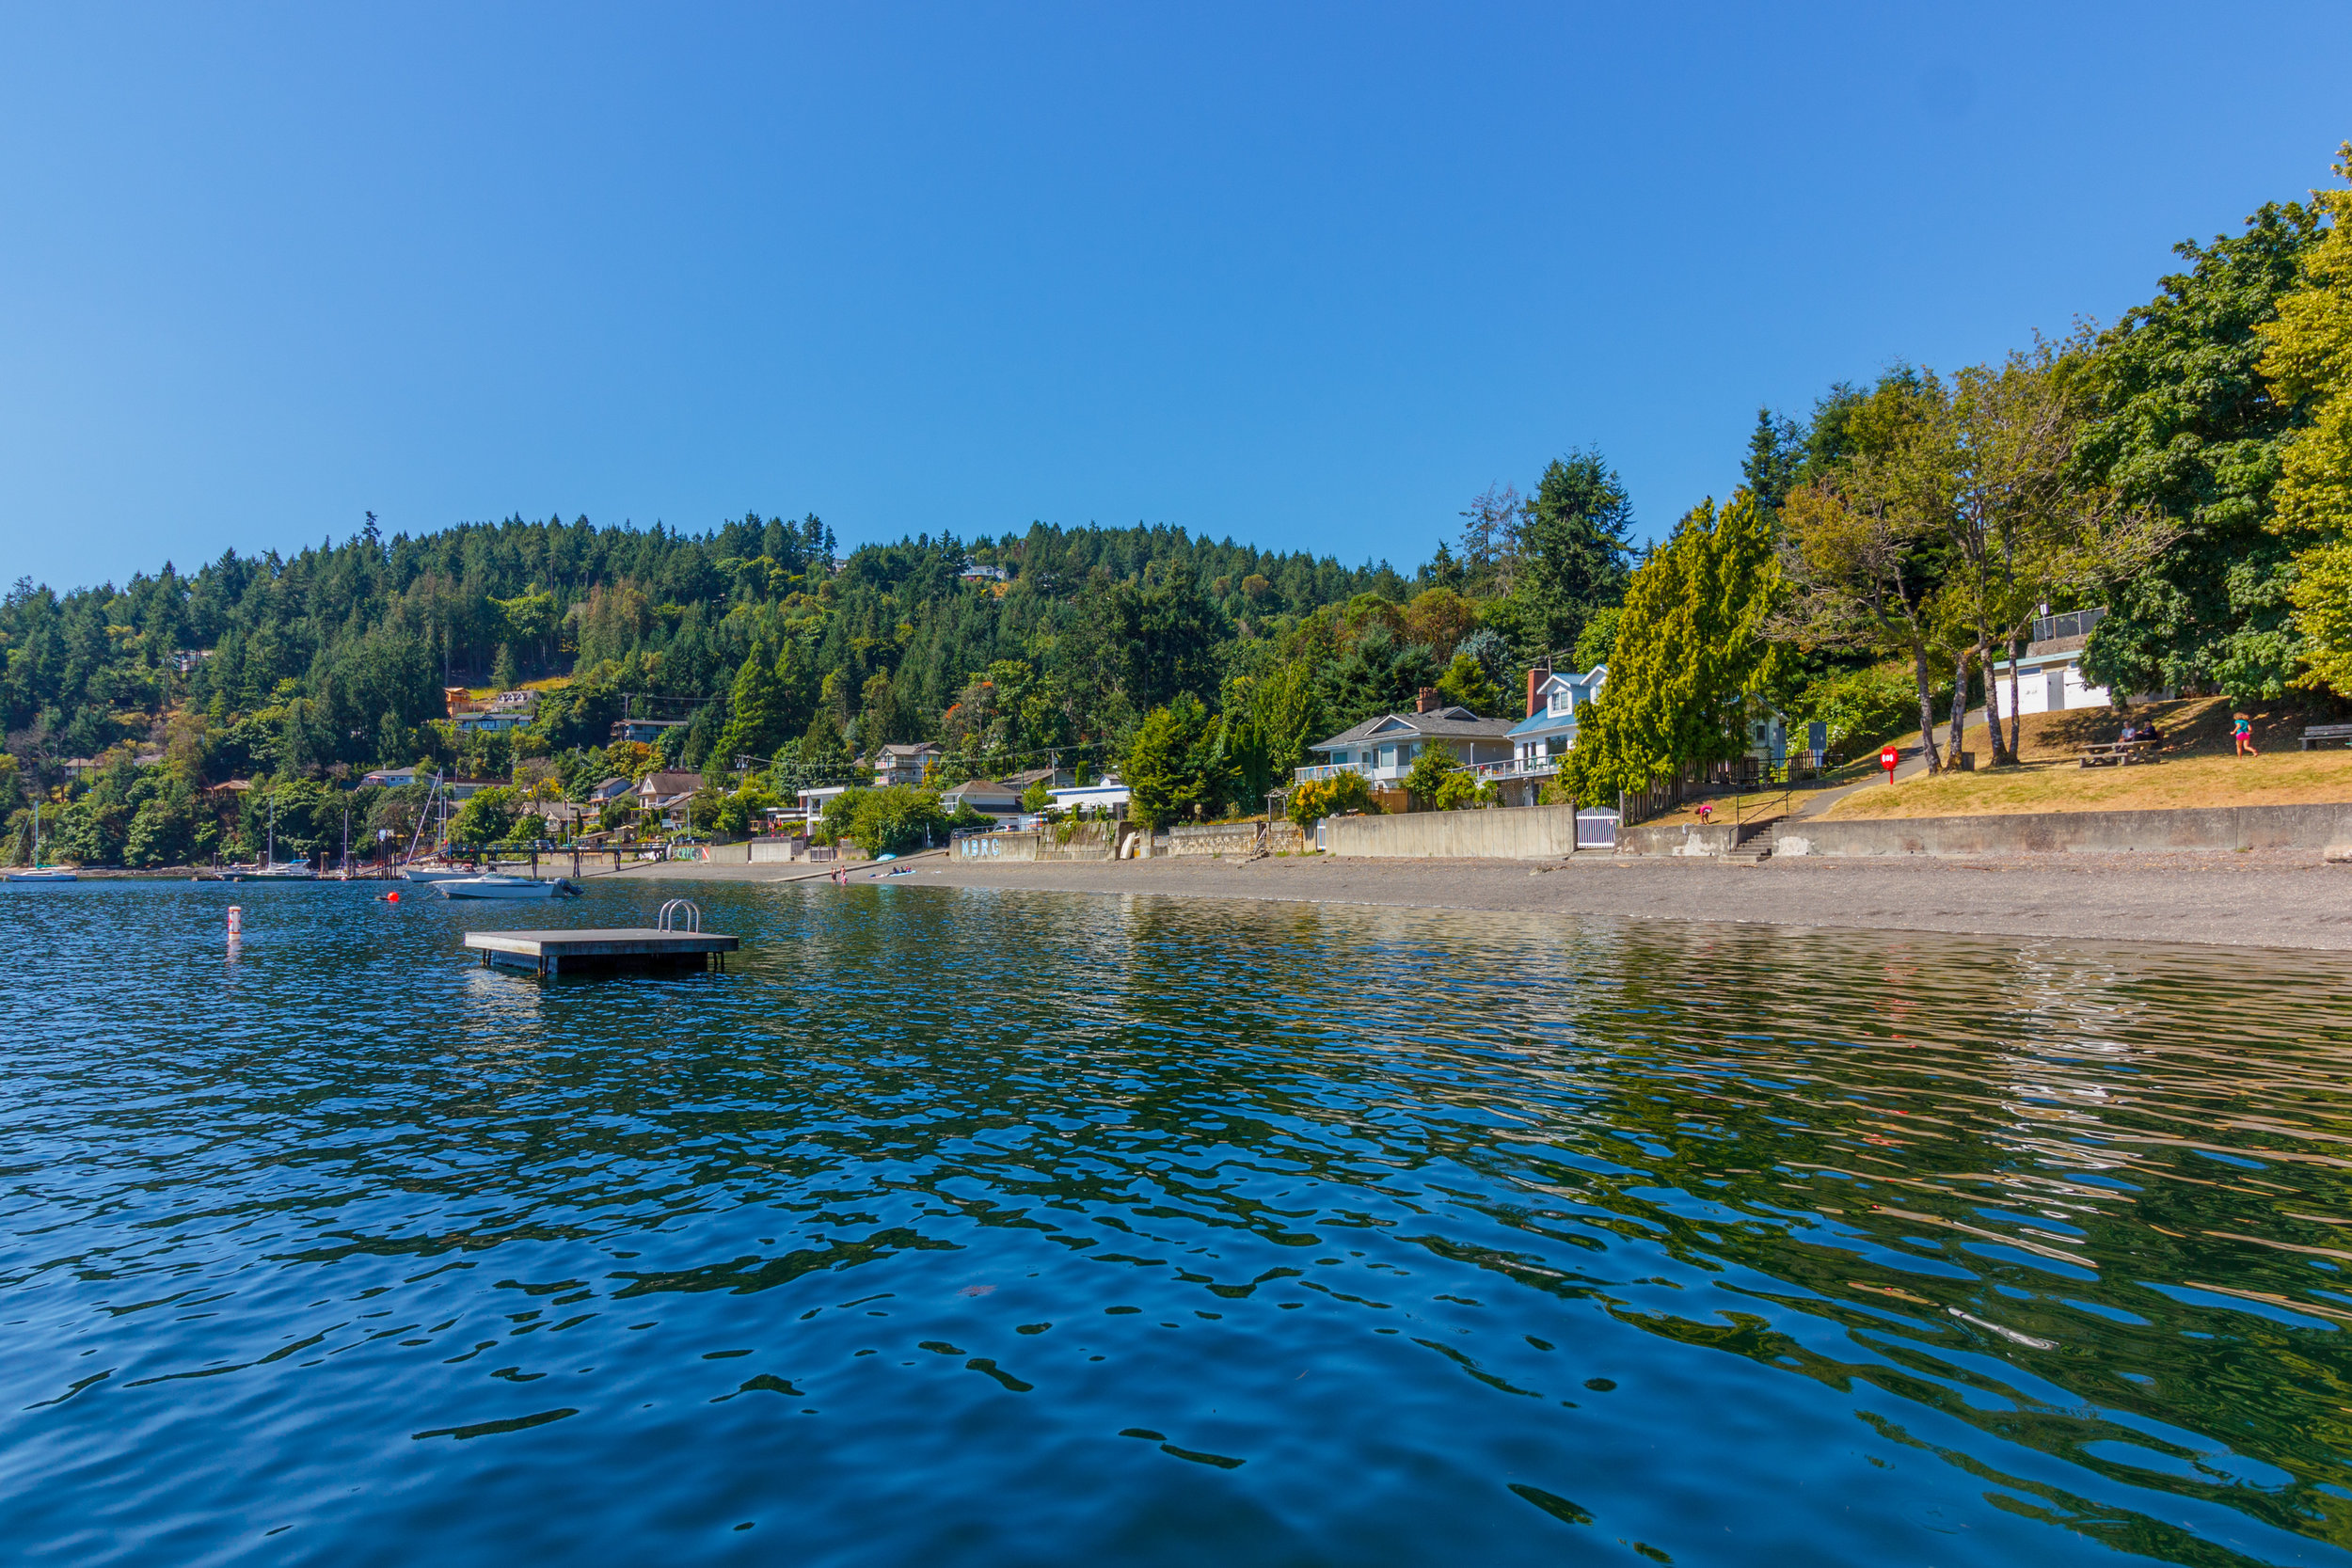 MAPLE BAY  In Maple Bay you can hop on a float plane or sail away on a yacht. Enjoy kayaking, swimming or boating, beautiful sunrises and epic hikes with channel views.